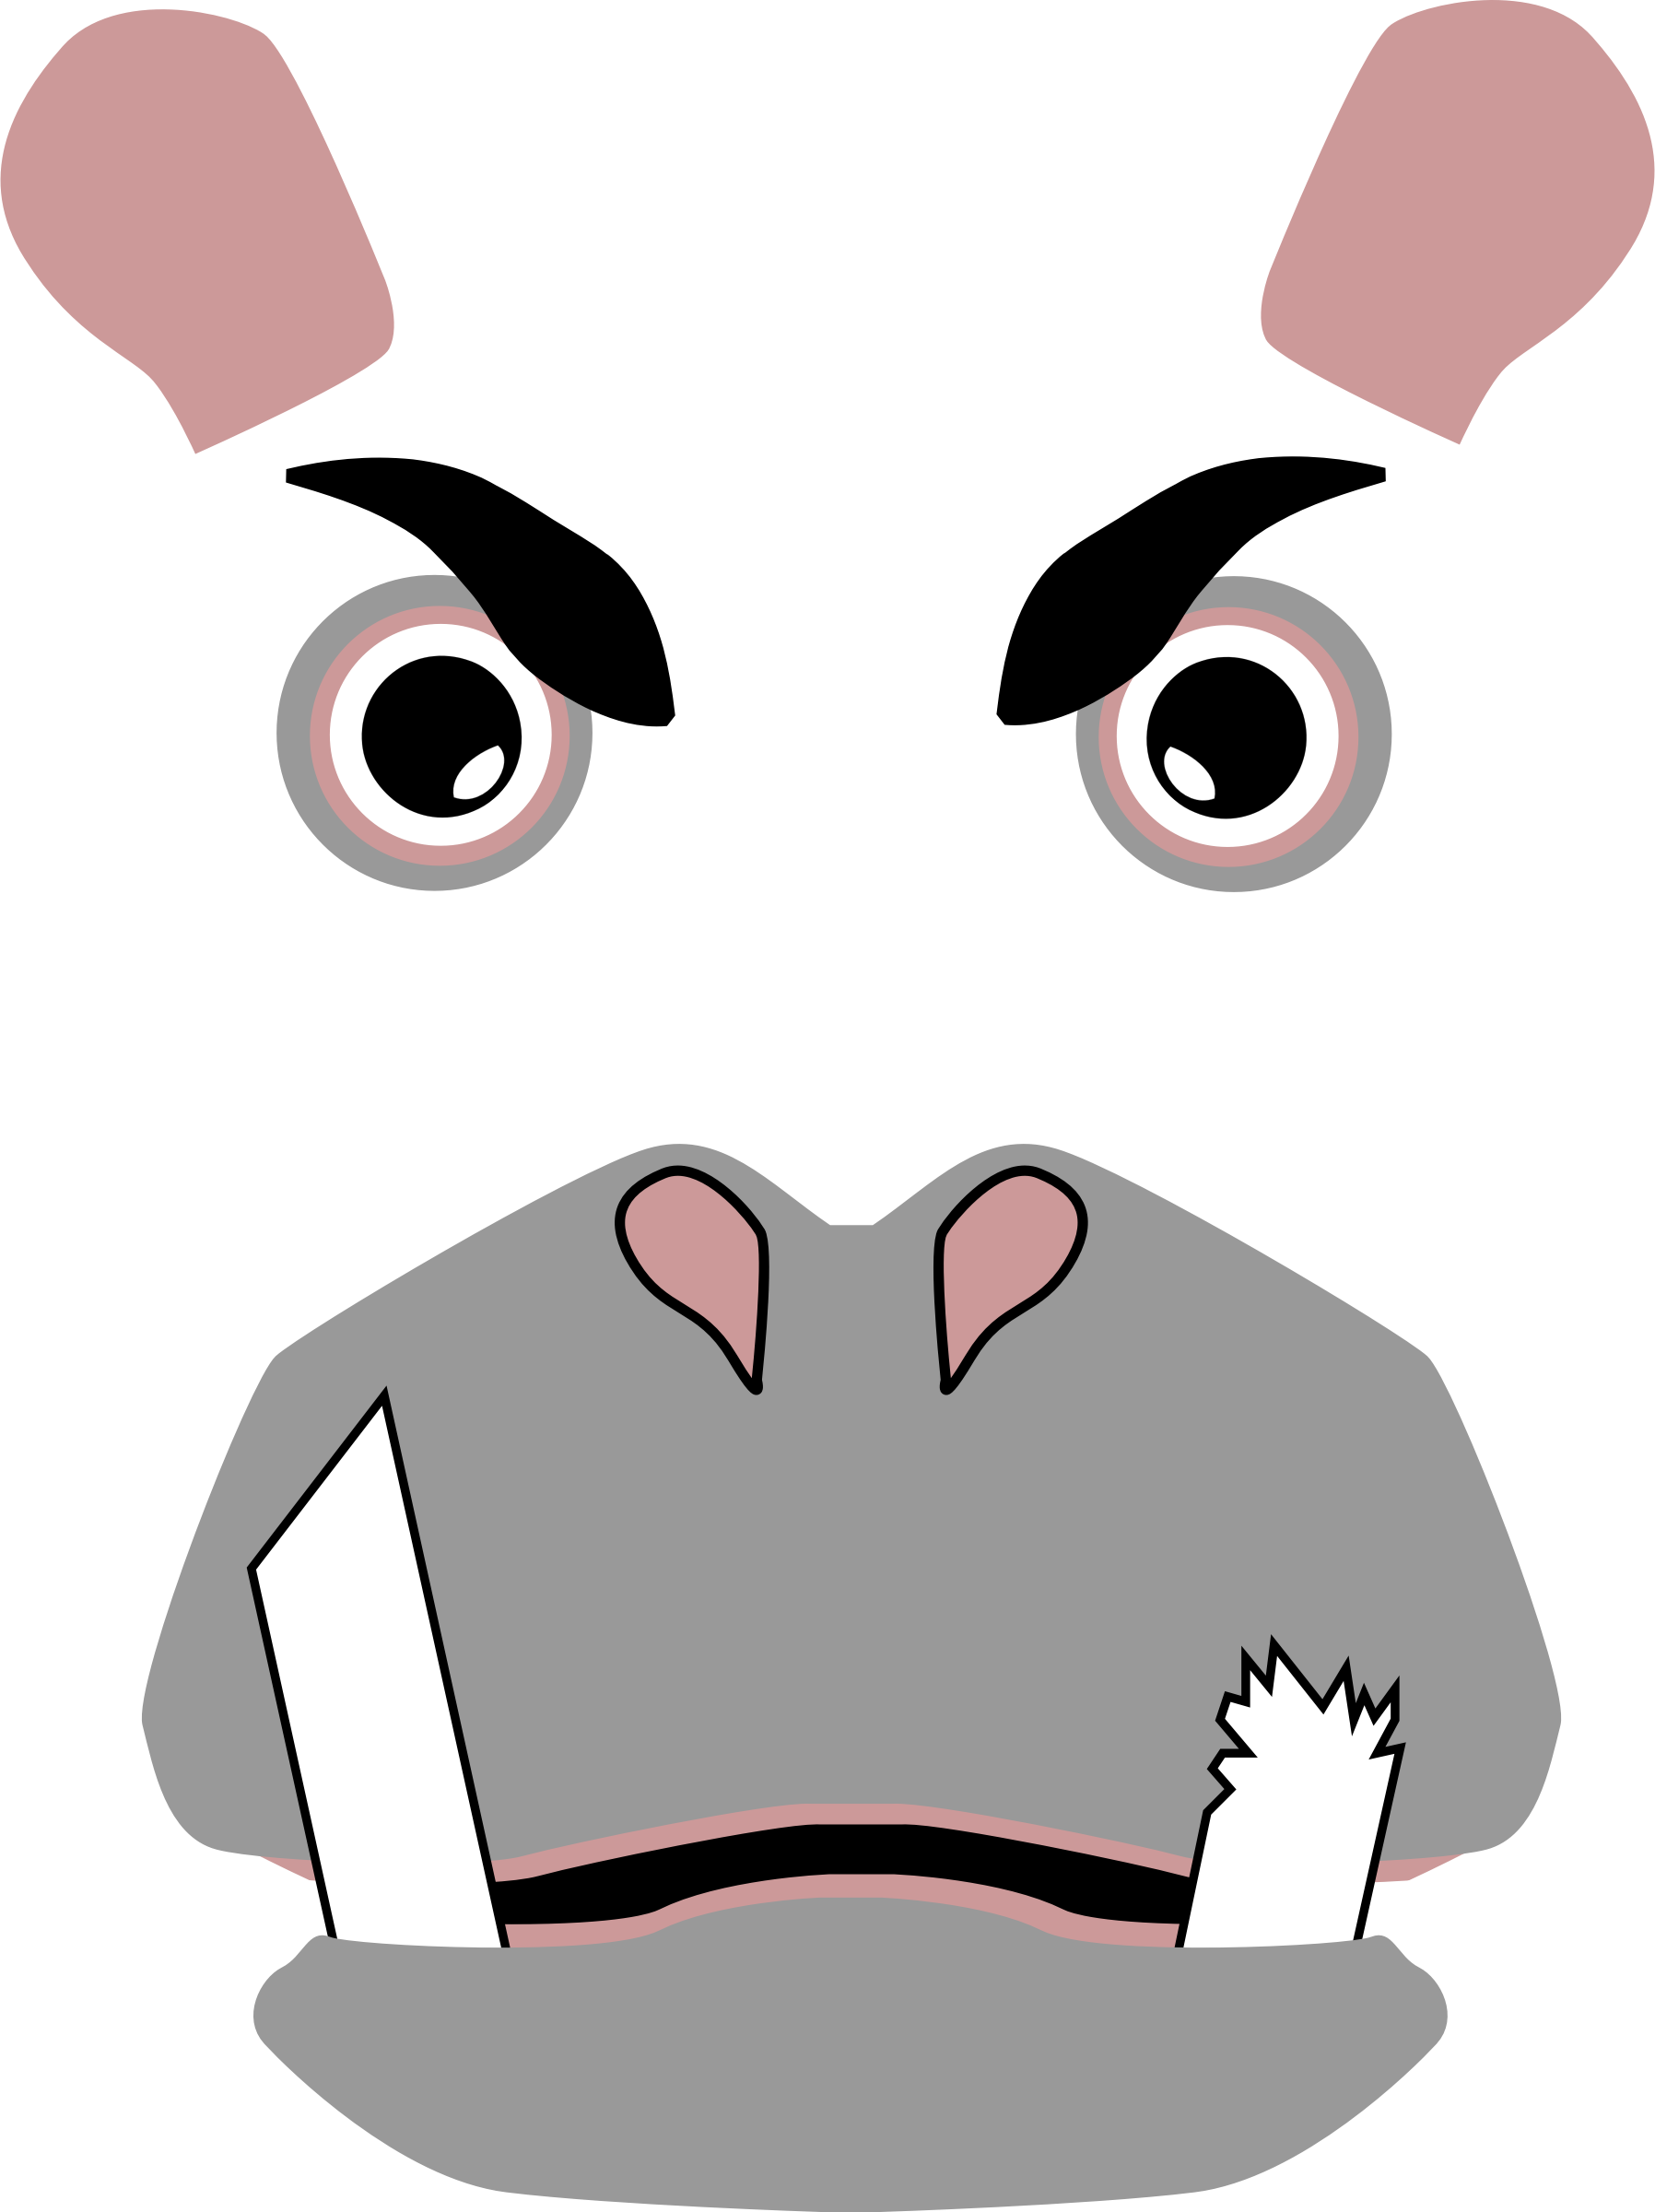 Angry Hippo (updated) by mikestratton.net